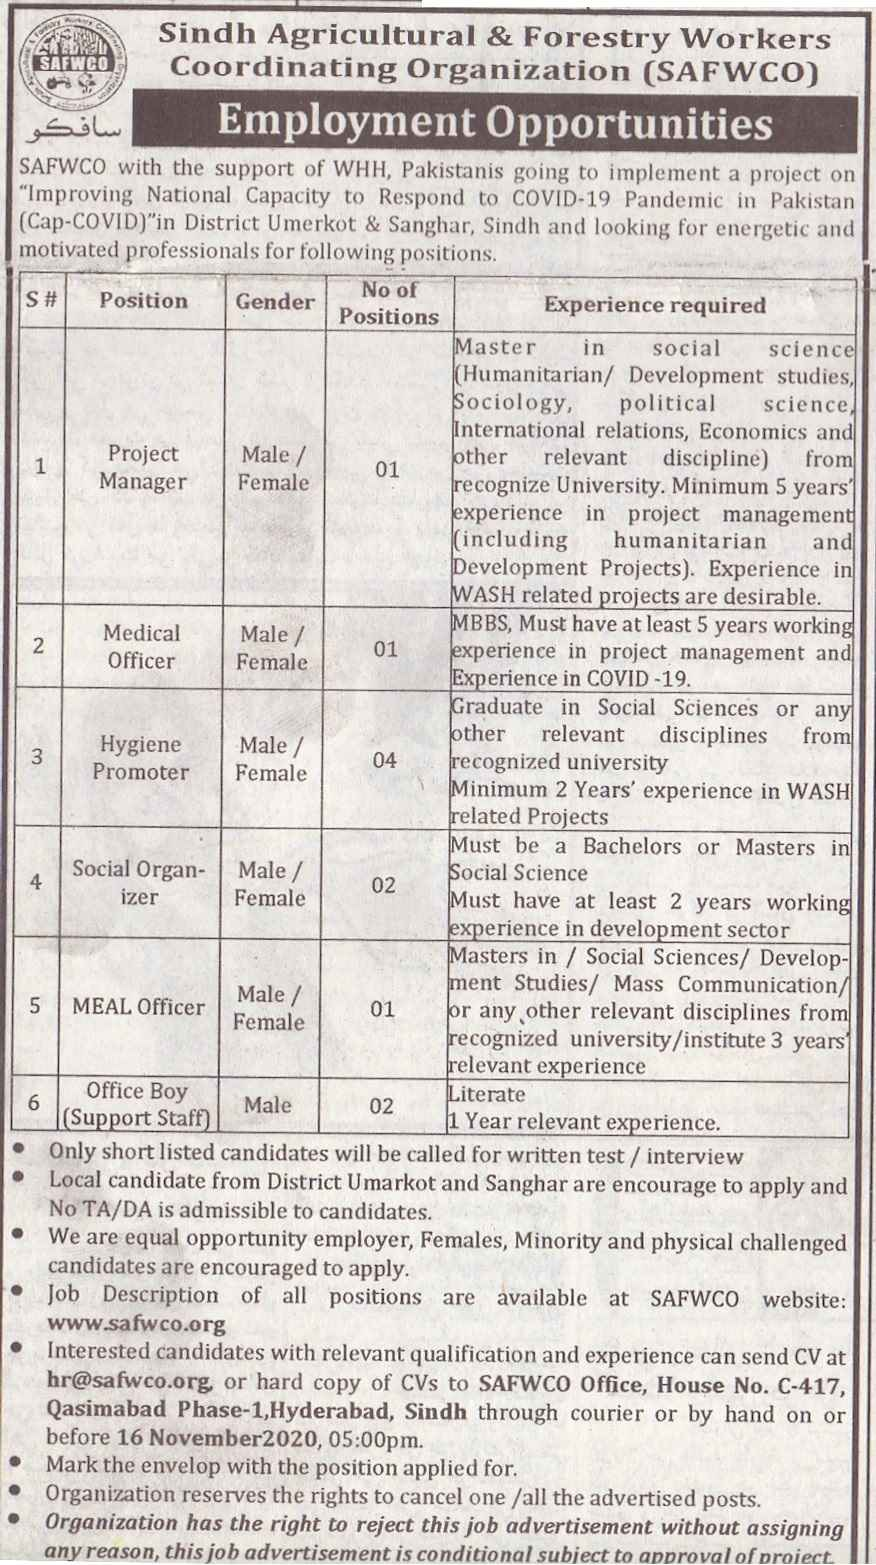 Latest Sindh Agricultural and Forestry Workers Coordinating Organization NGO Posts Jobs 2020